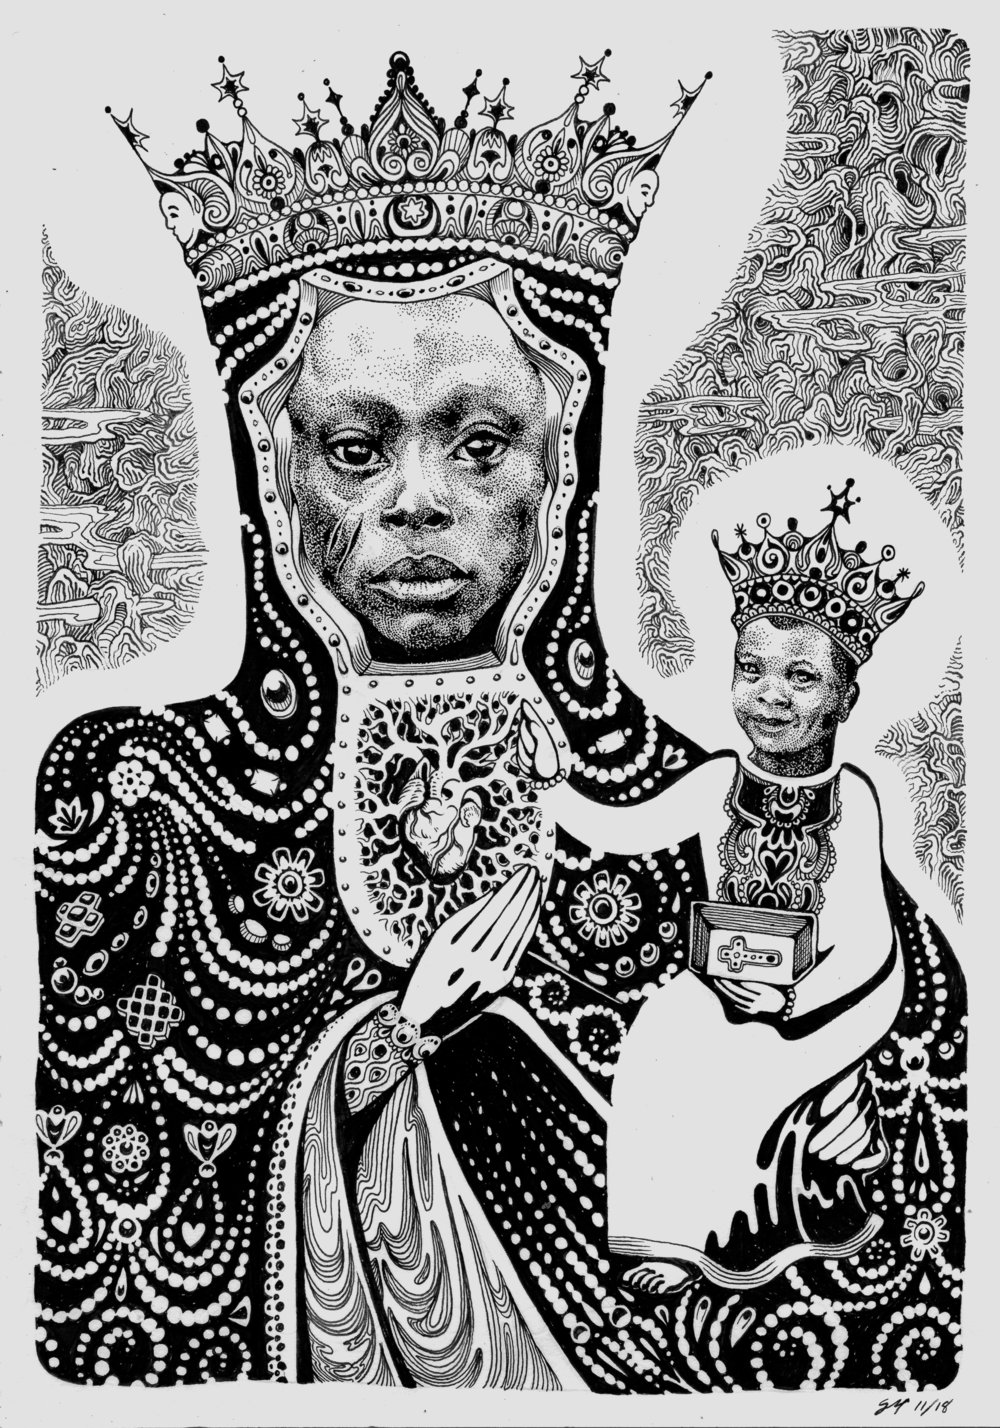 BLACK MADONNA, OUR LADY OF THE MYSTERY